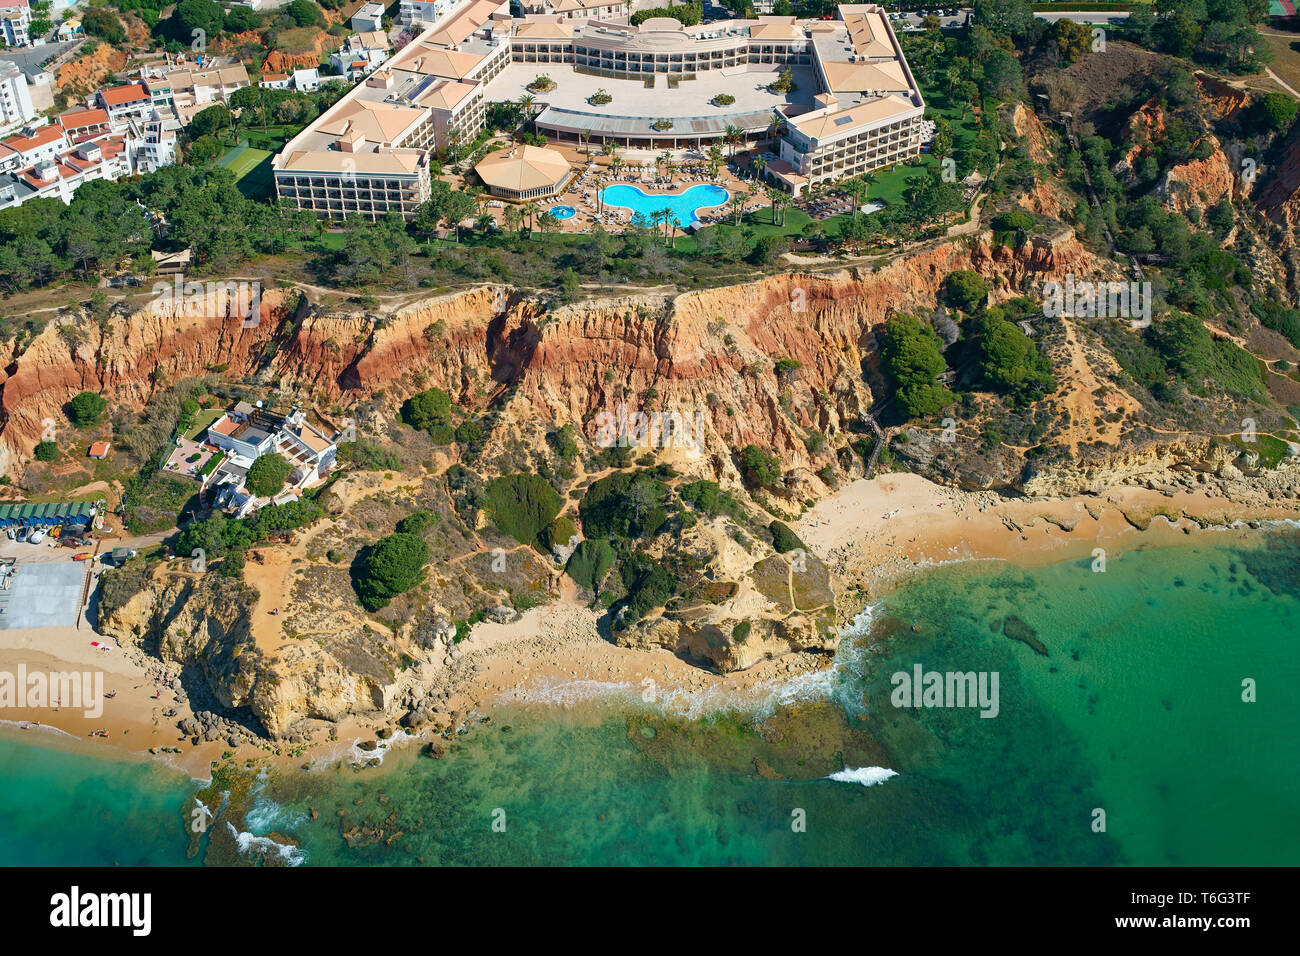 LUXURY RESORT OVERLOOKING THE COLORFUL CLIFF OF 'PRAIA DA FALÉSIA' (aerial view). Olhos de Agua, Albufeira, Algarve, Portugal. - Stock Image